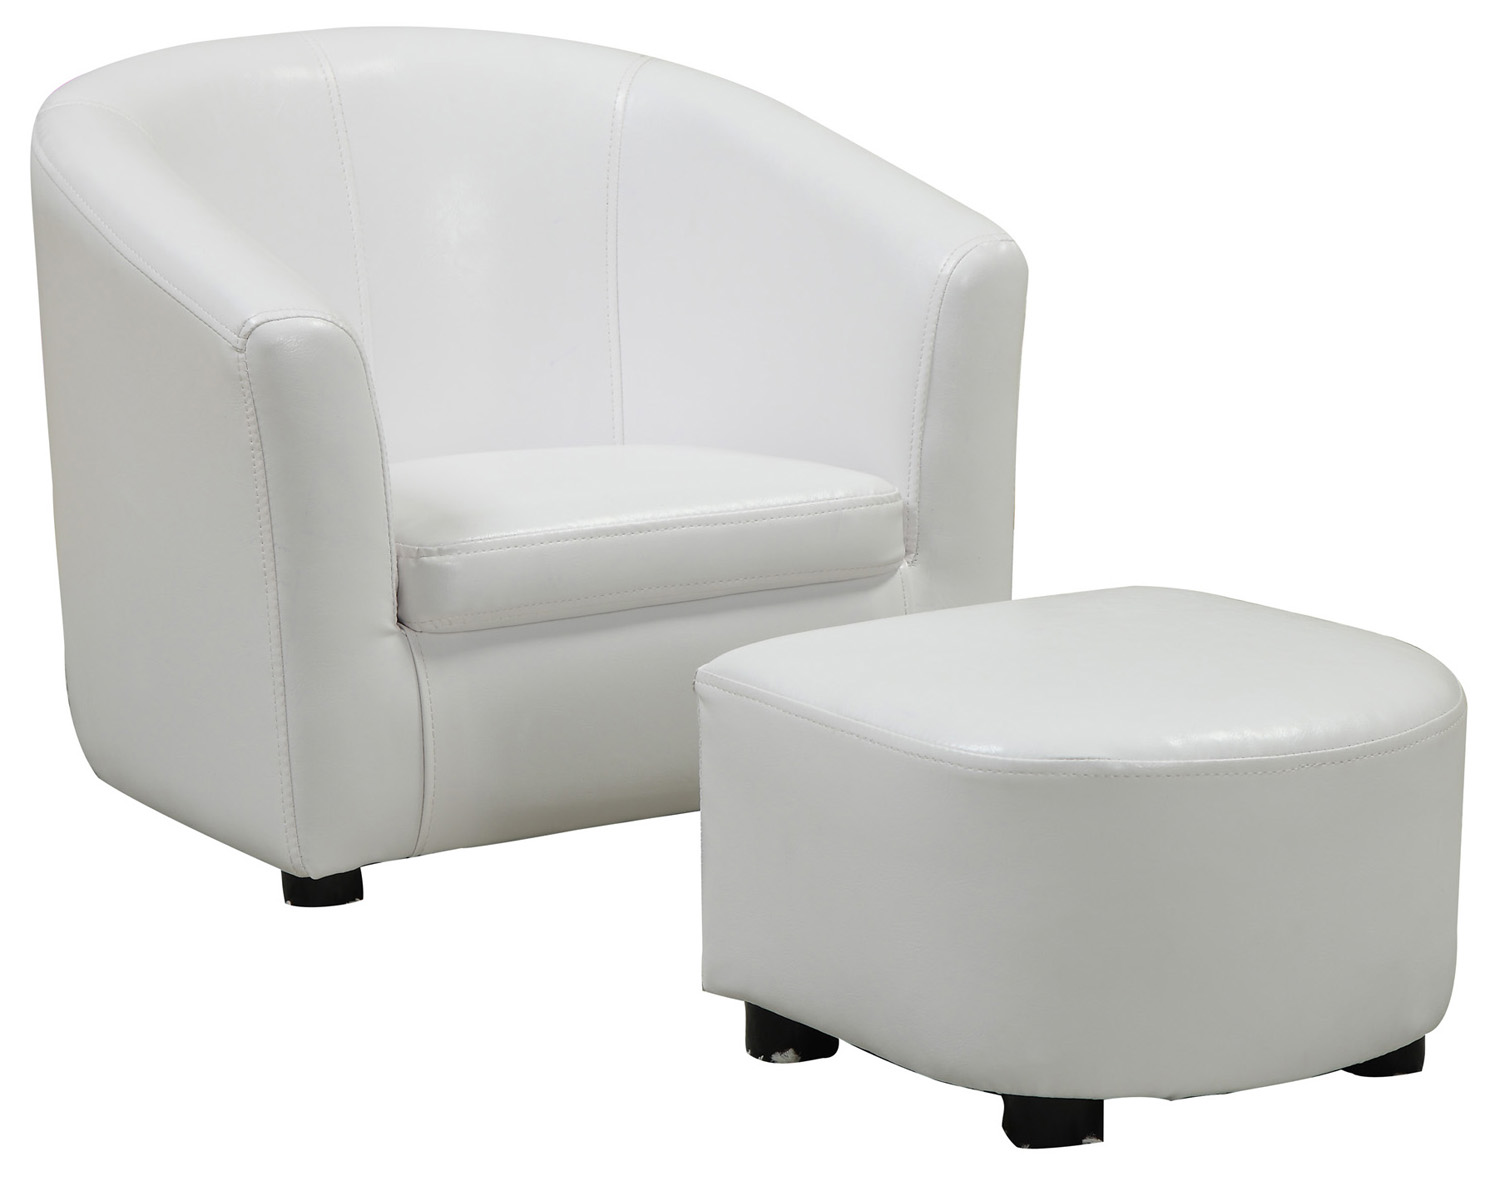 Juvenile Chair - 2 Pieces Set / White Leather-Look Fabric